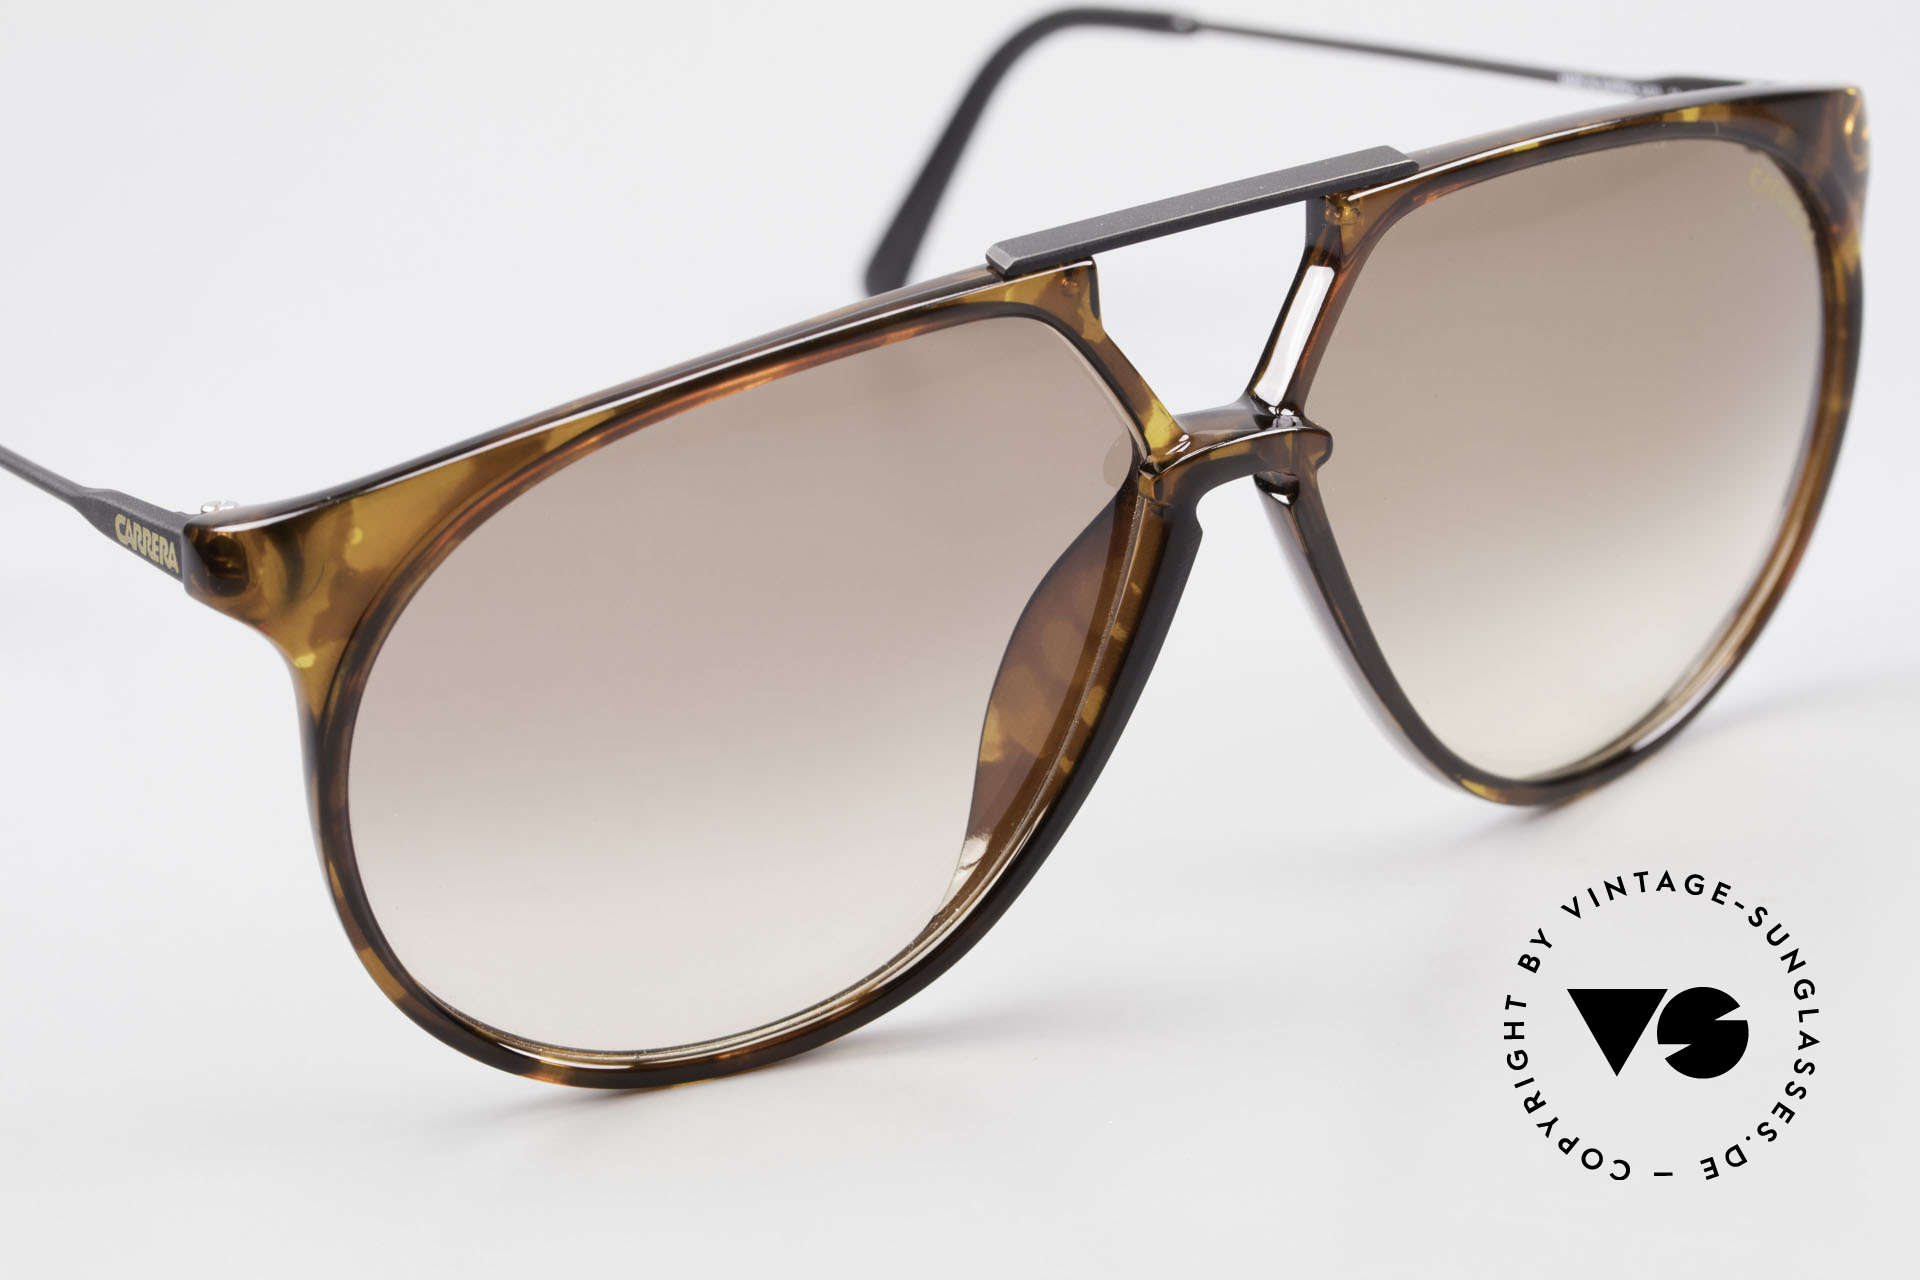 Carrera 5415 Old 80's Shades 2 Sets Of Lenses, unworn, one of a kind (incl. Porsche Carrera hard case), Made for Men